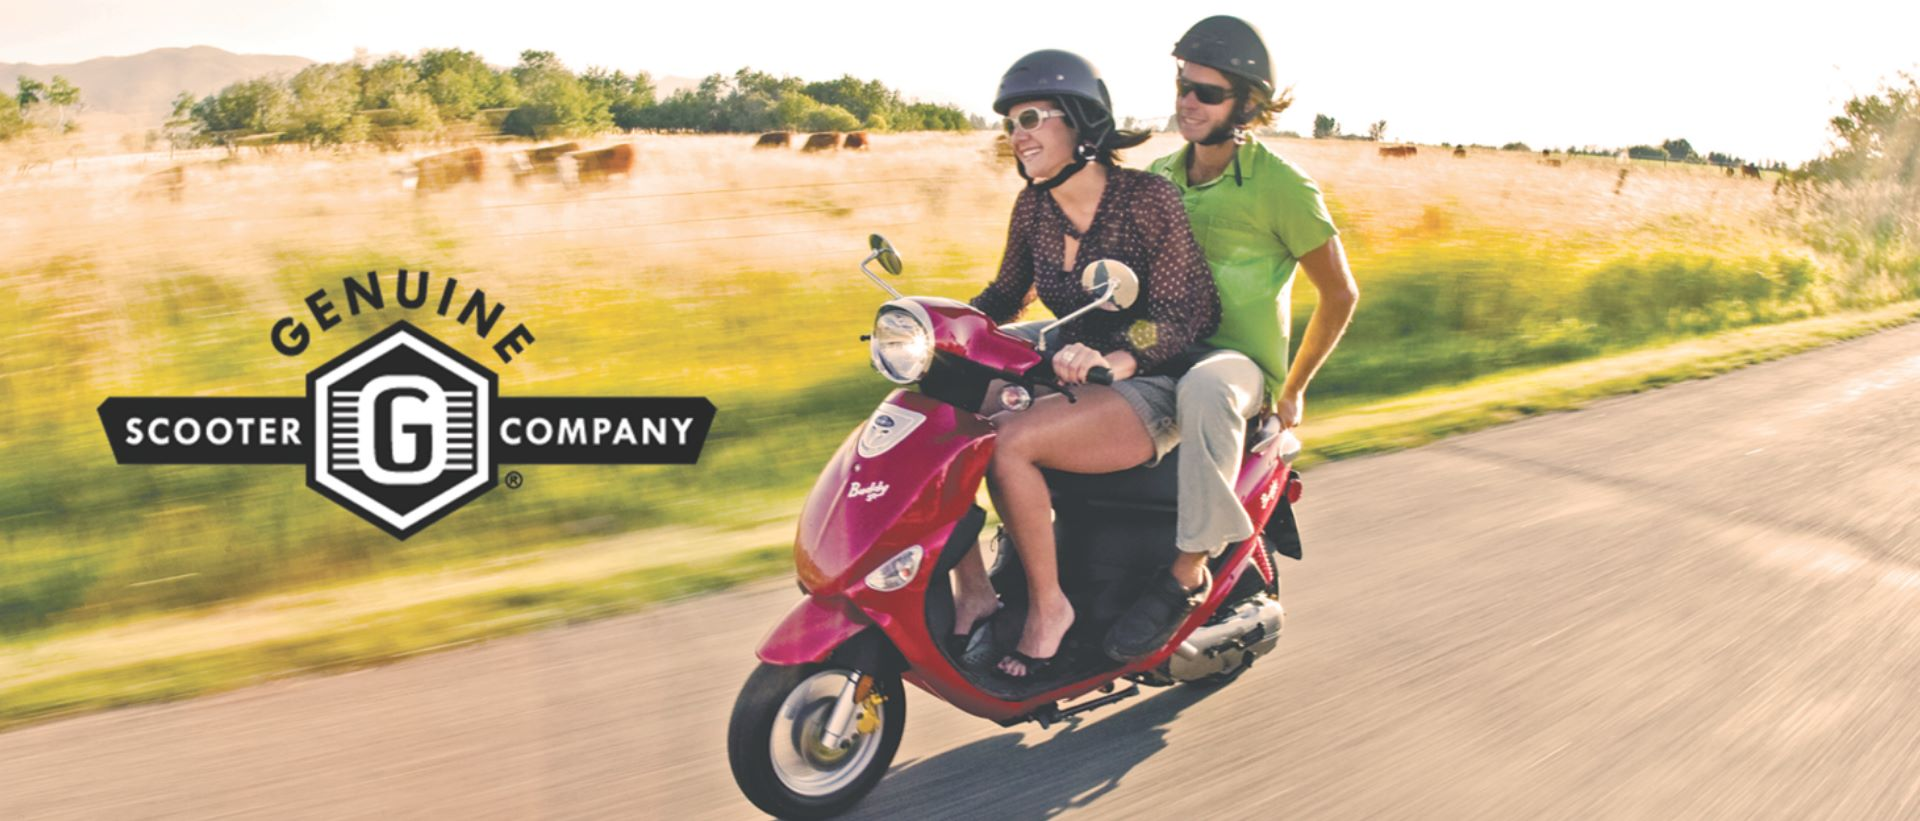 Tropical Scooters & Motorcycles: Largest Scooter Dealer in